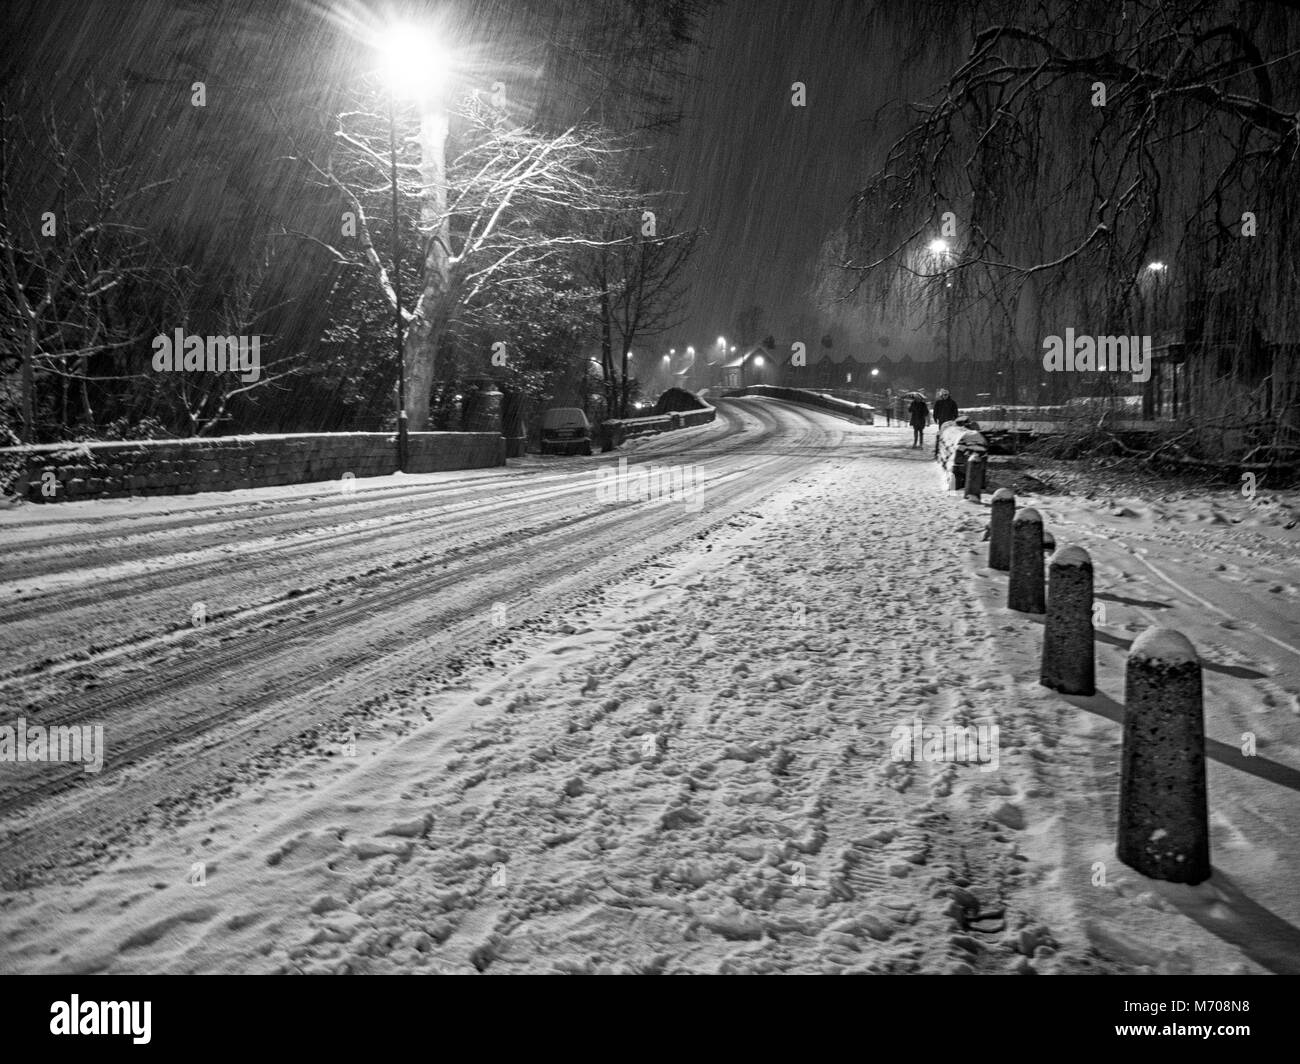 Late evening snow fall in Otley showing Bridge street and road bridge spanning the River Wharfe - Stock Image